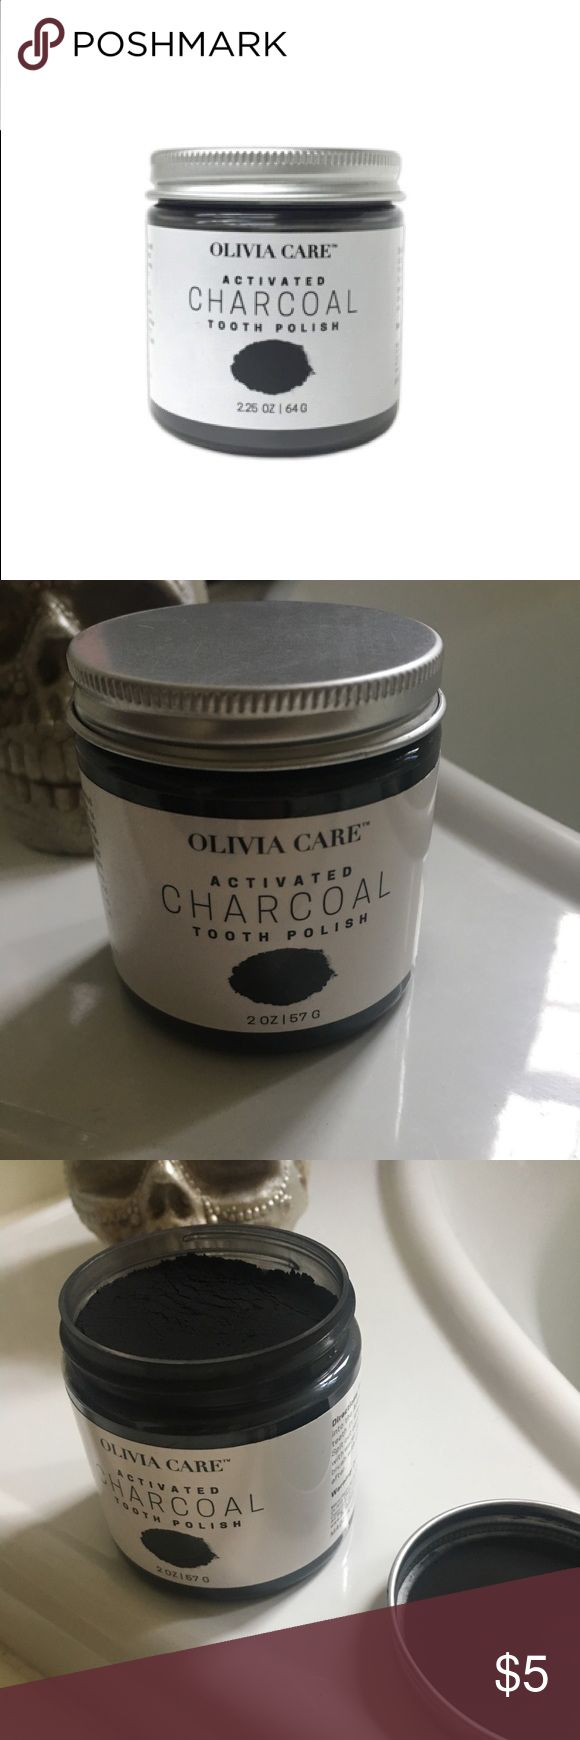 ACTIVATED WHITENING CHARCOAL TOOTH POLISH Used once. Whiten your teeth the natural way with Activated Charcoal Tooth Polish. Activated Charcoal binds to stains on teeth, such as coffee, tea, and wine, to help remove them, leaving teeth whiter and brighter.  Carbon (Activated Charcoal Powder), Kaolin (White Clay), Mentha Piperia (Peppermint) Oil. How: Brush teeth in small gentle circles for two minutes. Spit out carefully,rinse well with water. Use instead of regular toothpaste, or brush with…